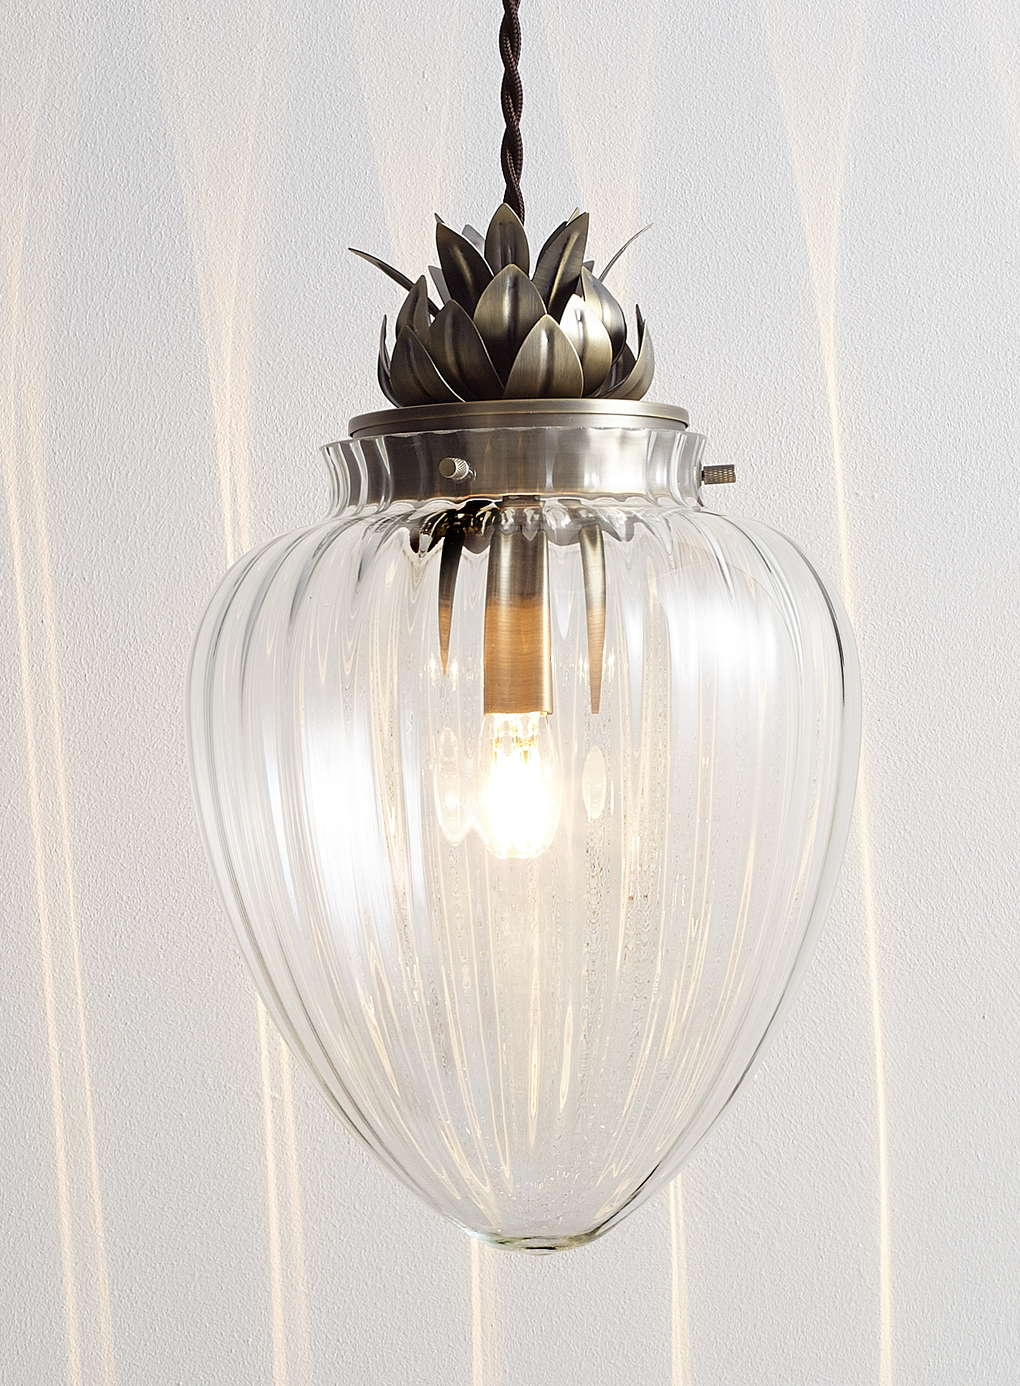 Modern glass antique brass pineapple ceiling pendant light fitting modern glass antique brass pineapple ceiling pendant light fitting bhs janna 714084881867 ebay aloadofball Images